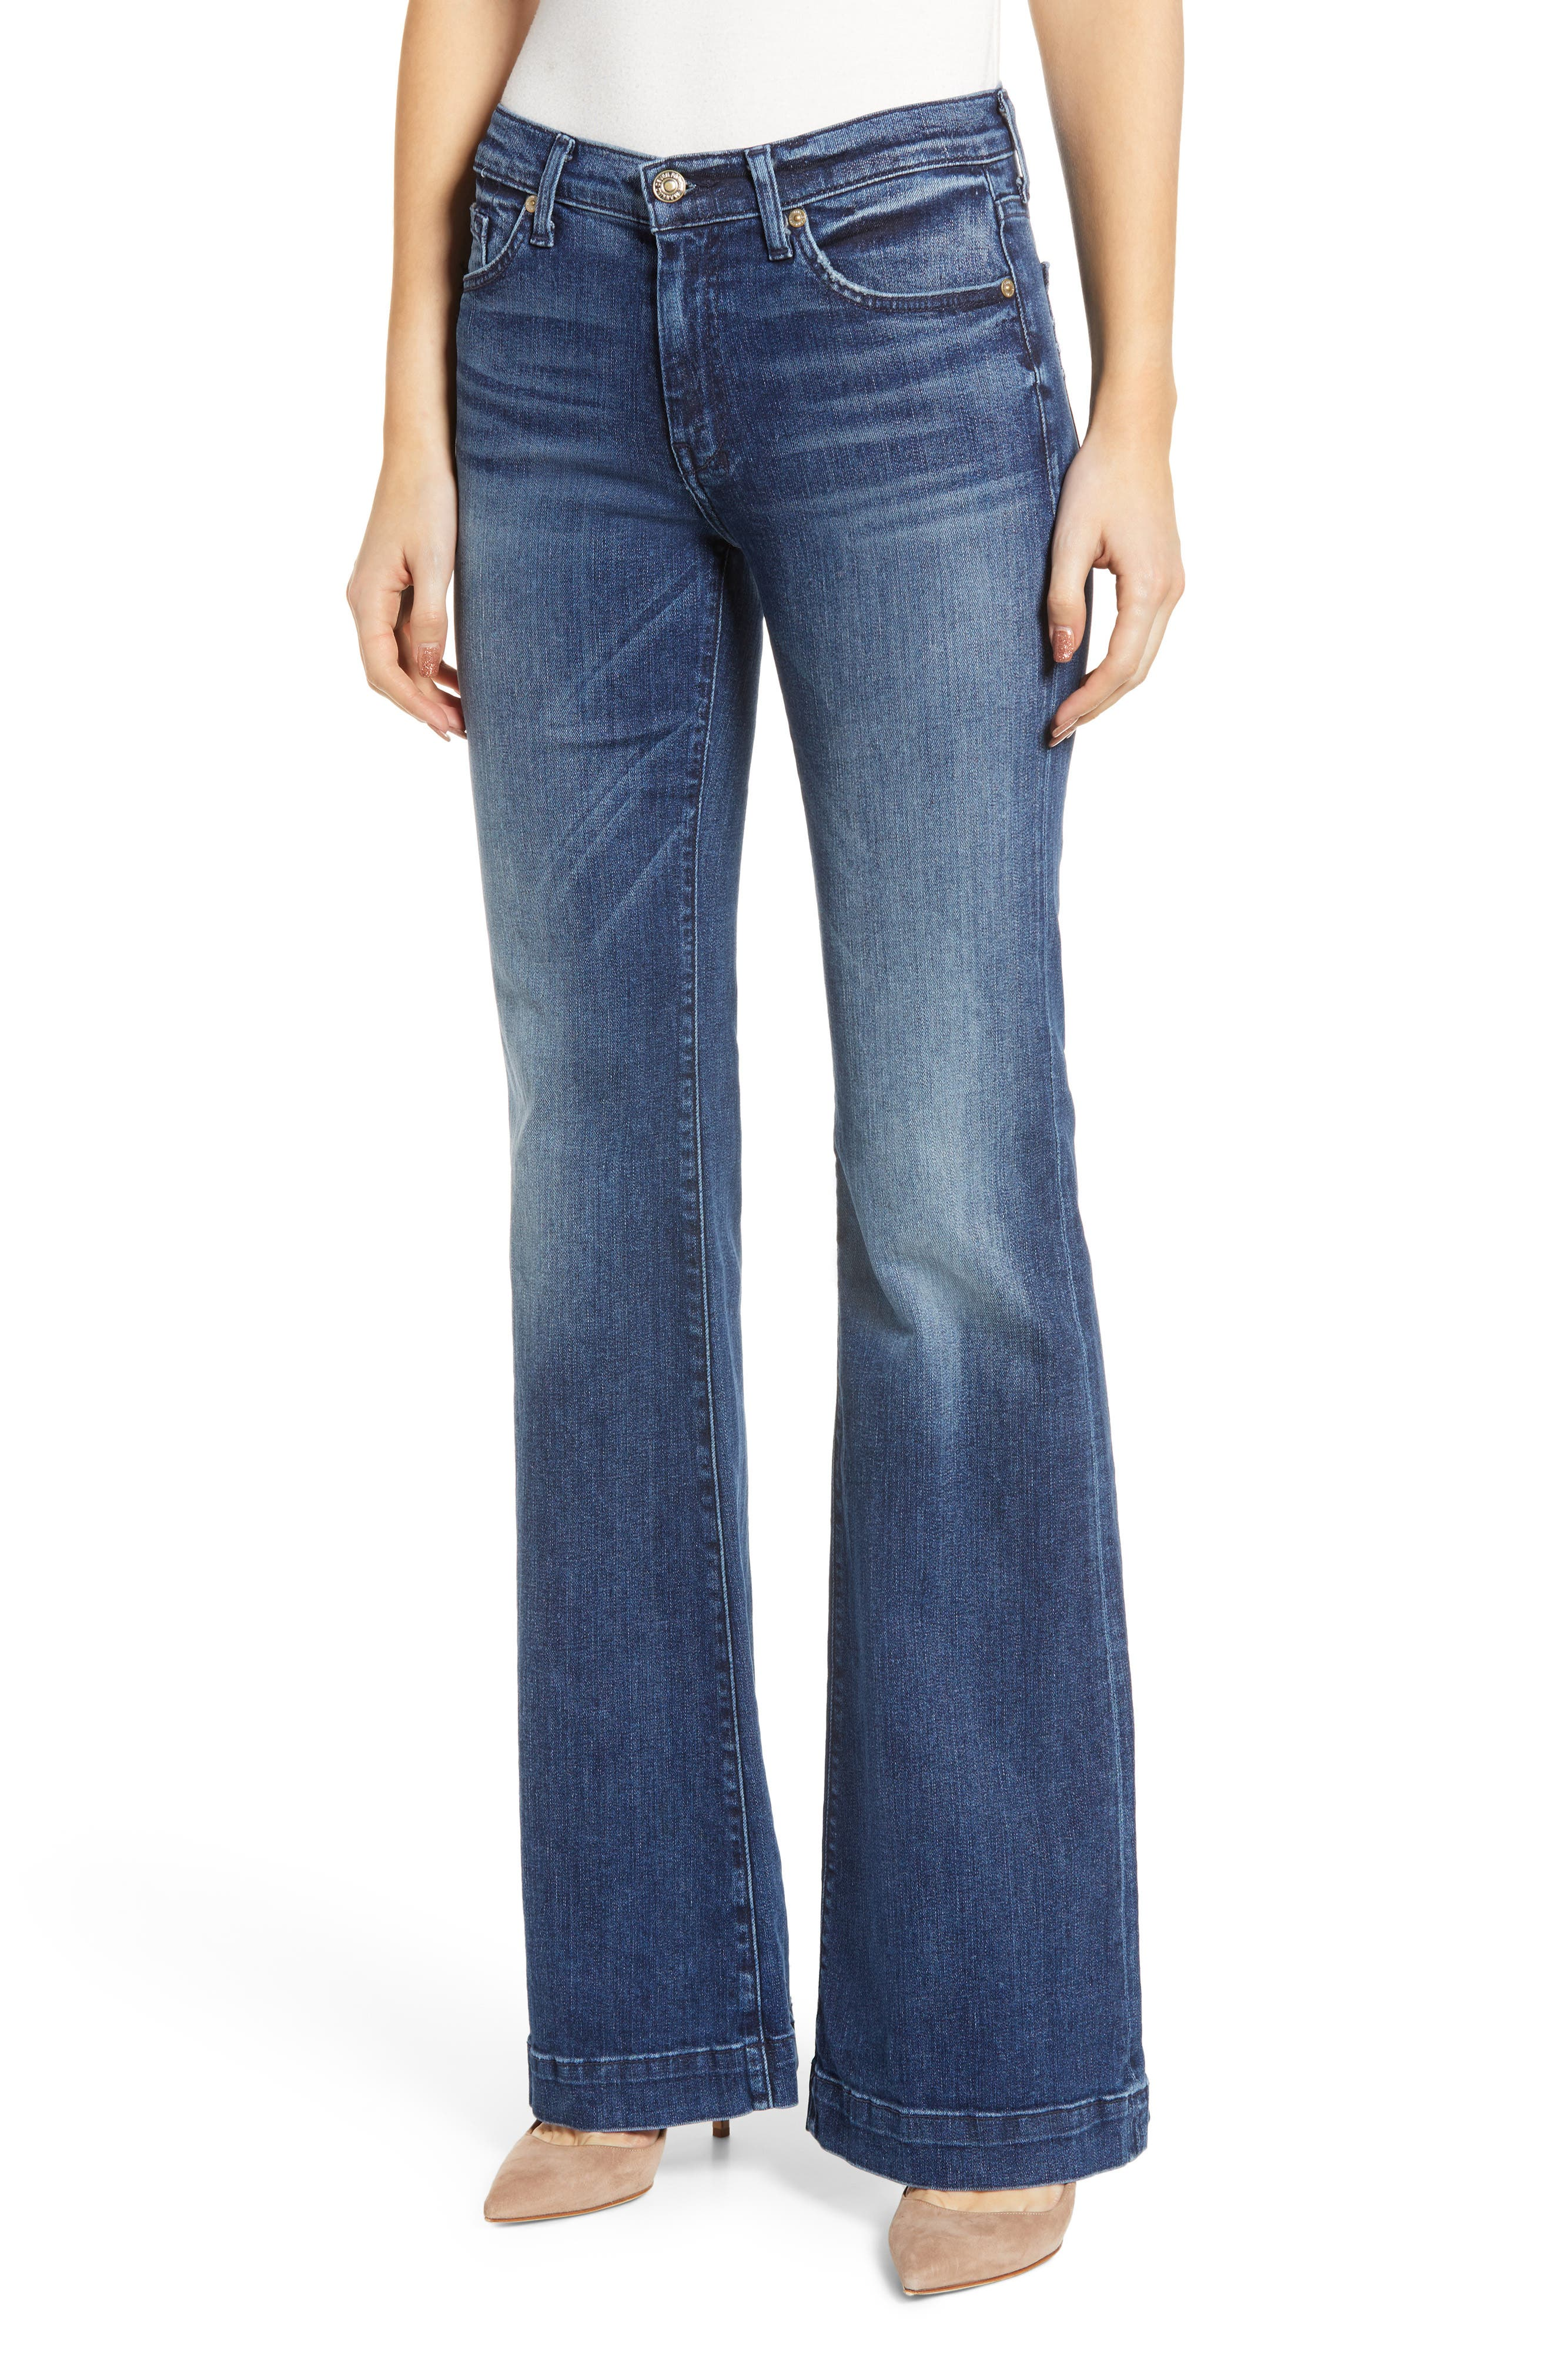 7 FOR ALL MANKIND<SUP>®</SUP>, b(air) Dojo Trouser Jeans, Alternate thumbnail 2, color, 472